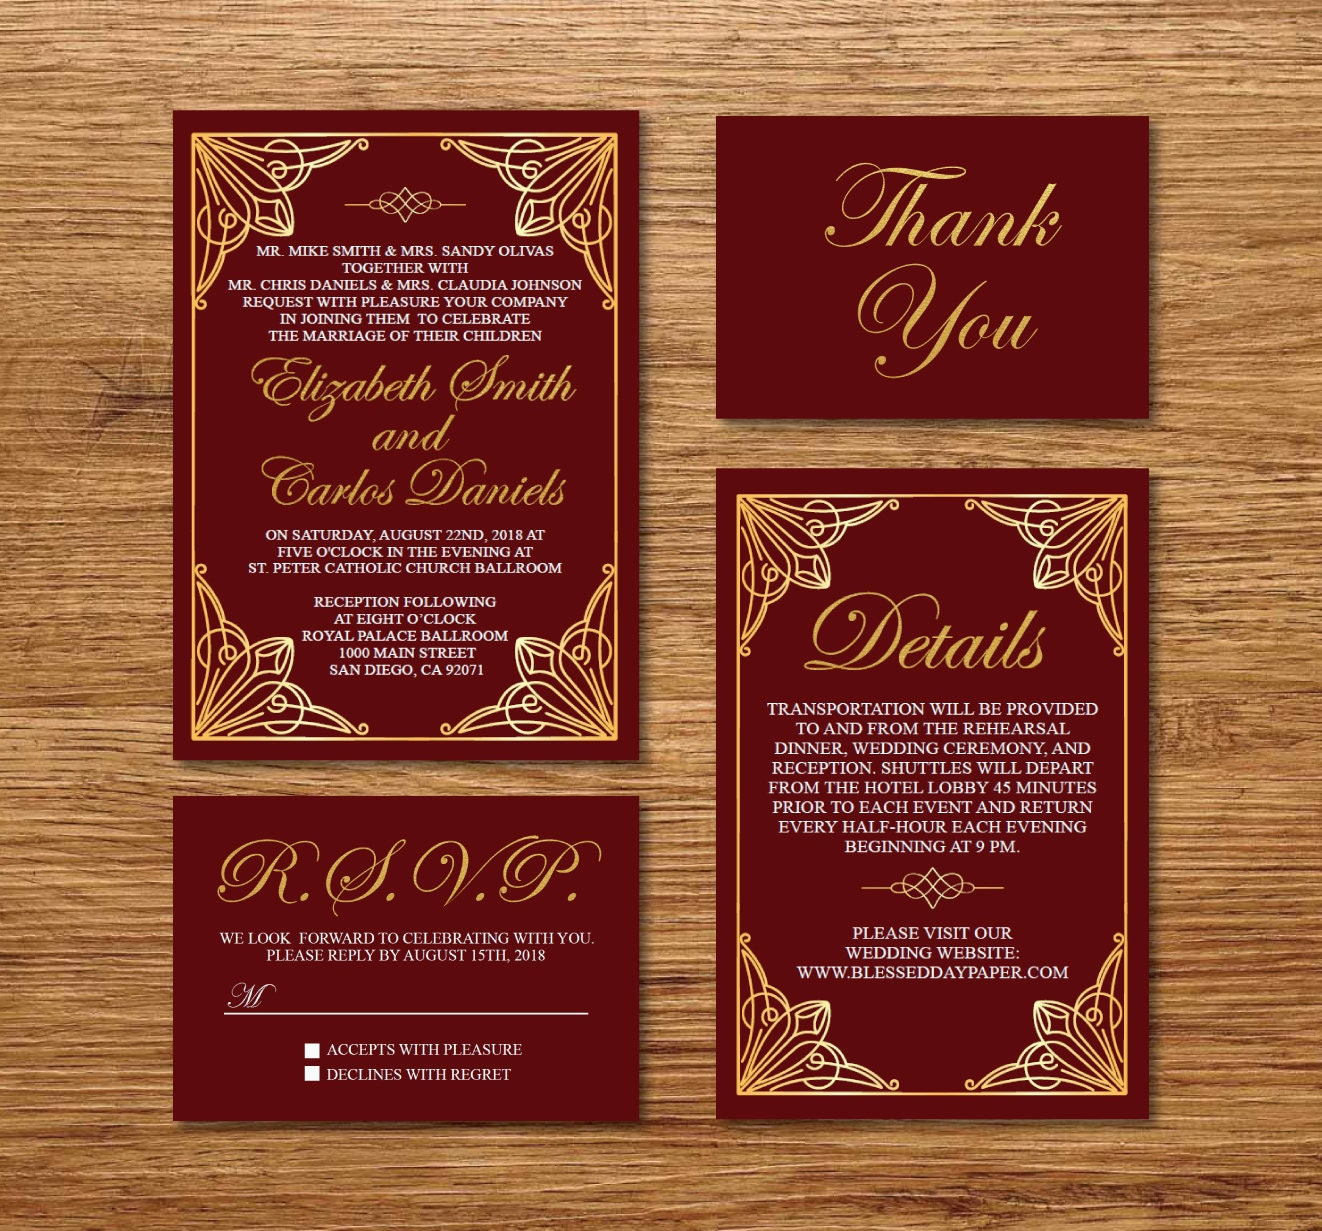 Gold & Burgundy Wedding Invitation Printable/E-Card Wedding | Etsy